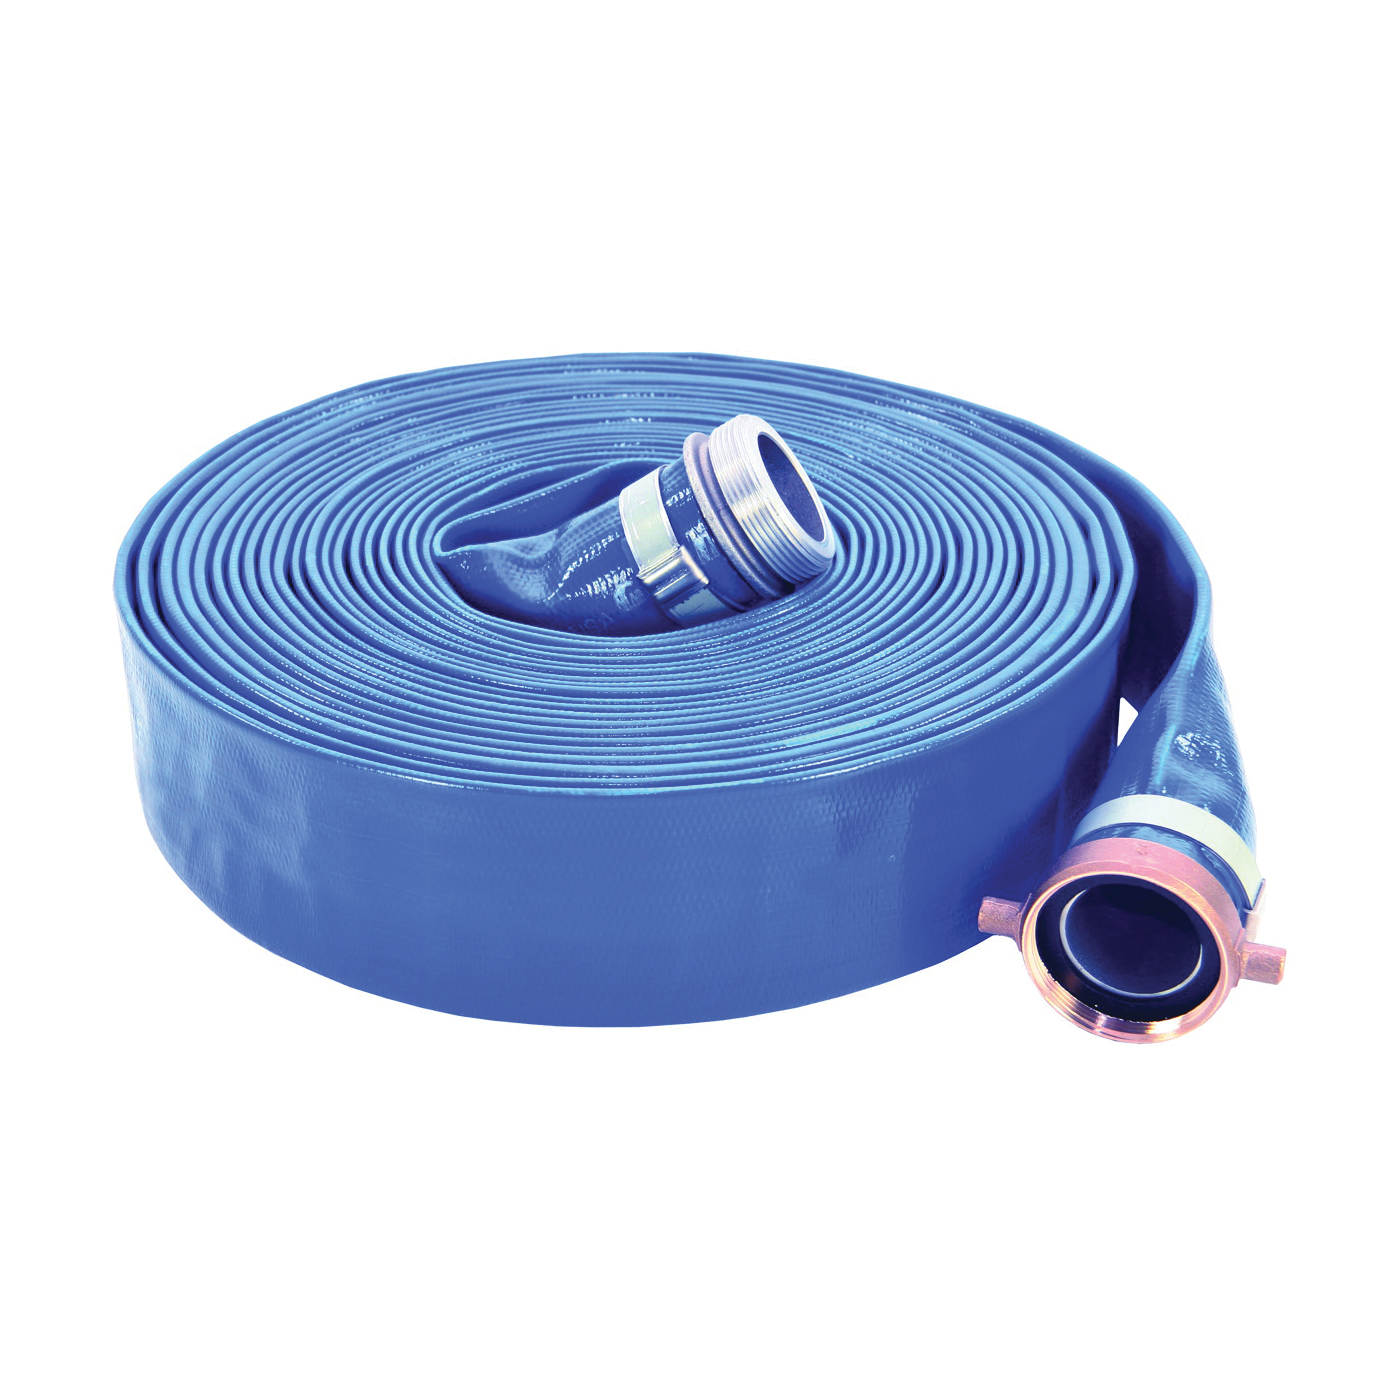 Picture of ABBOTT RUBBER 1148-2000-50-CE Water Discharge Hose, 50 ft L, Female x Male, PVC, Blue